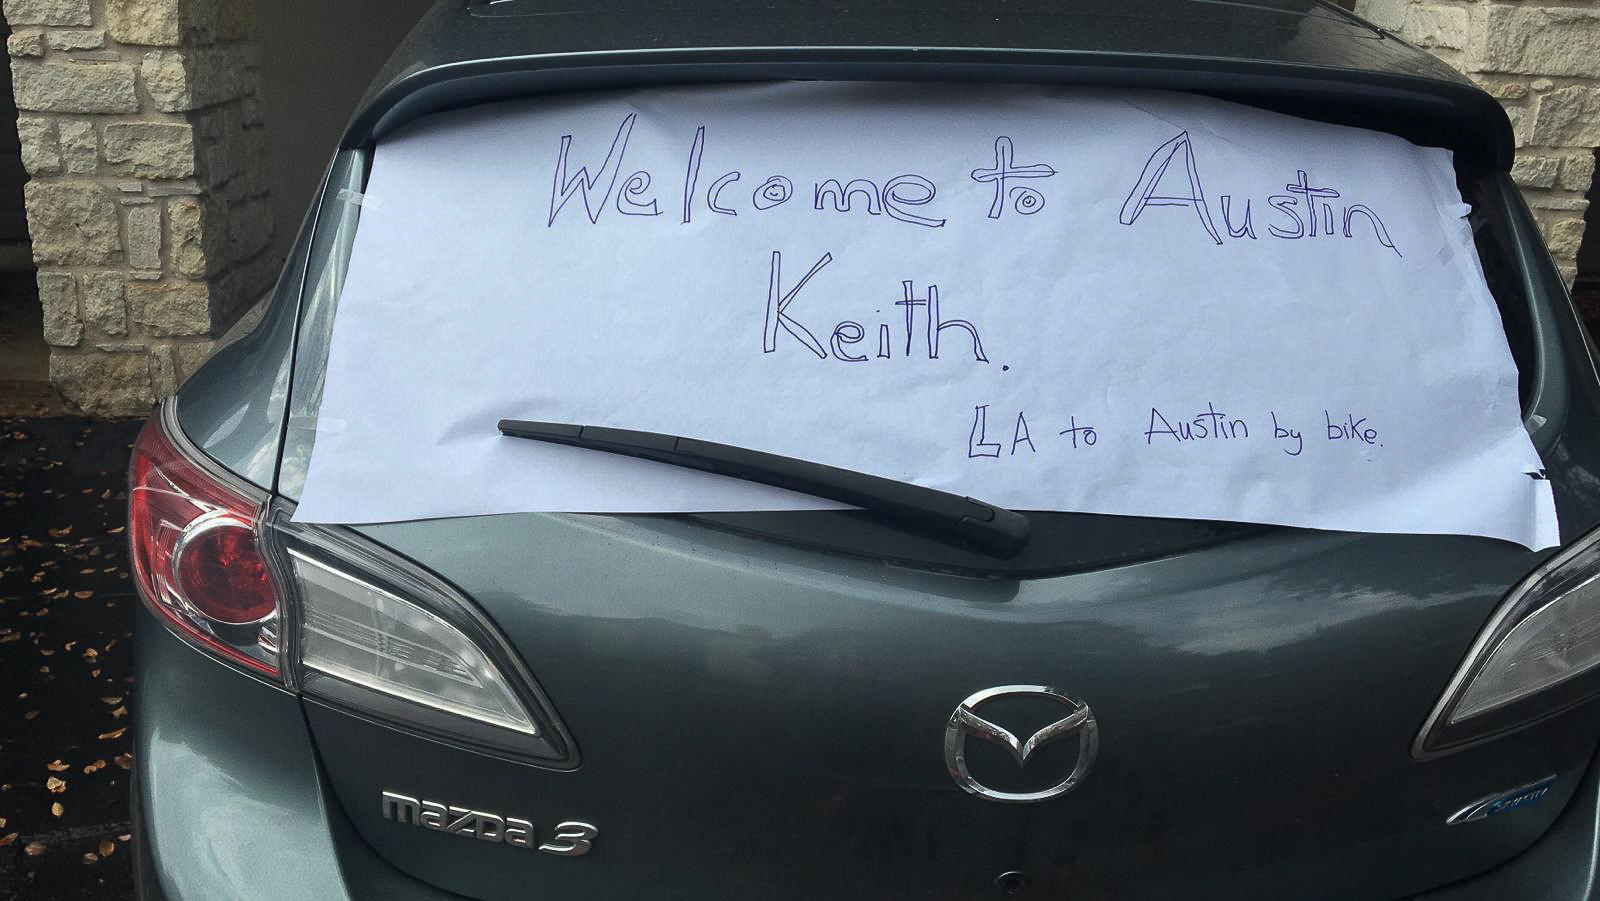 Welcome to Austin, Keith